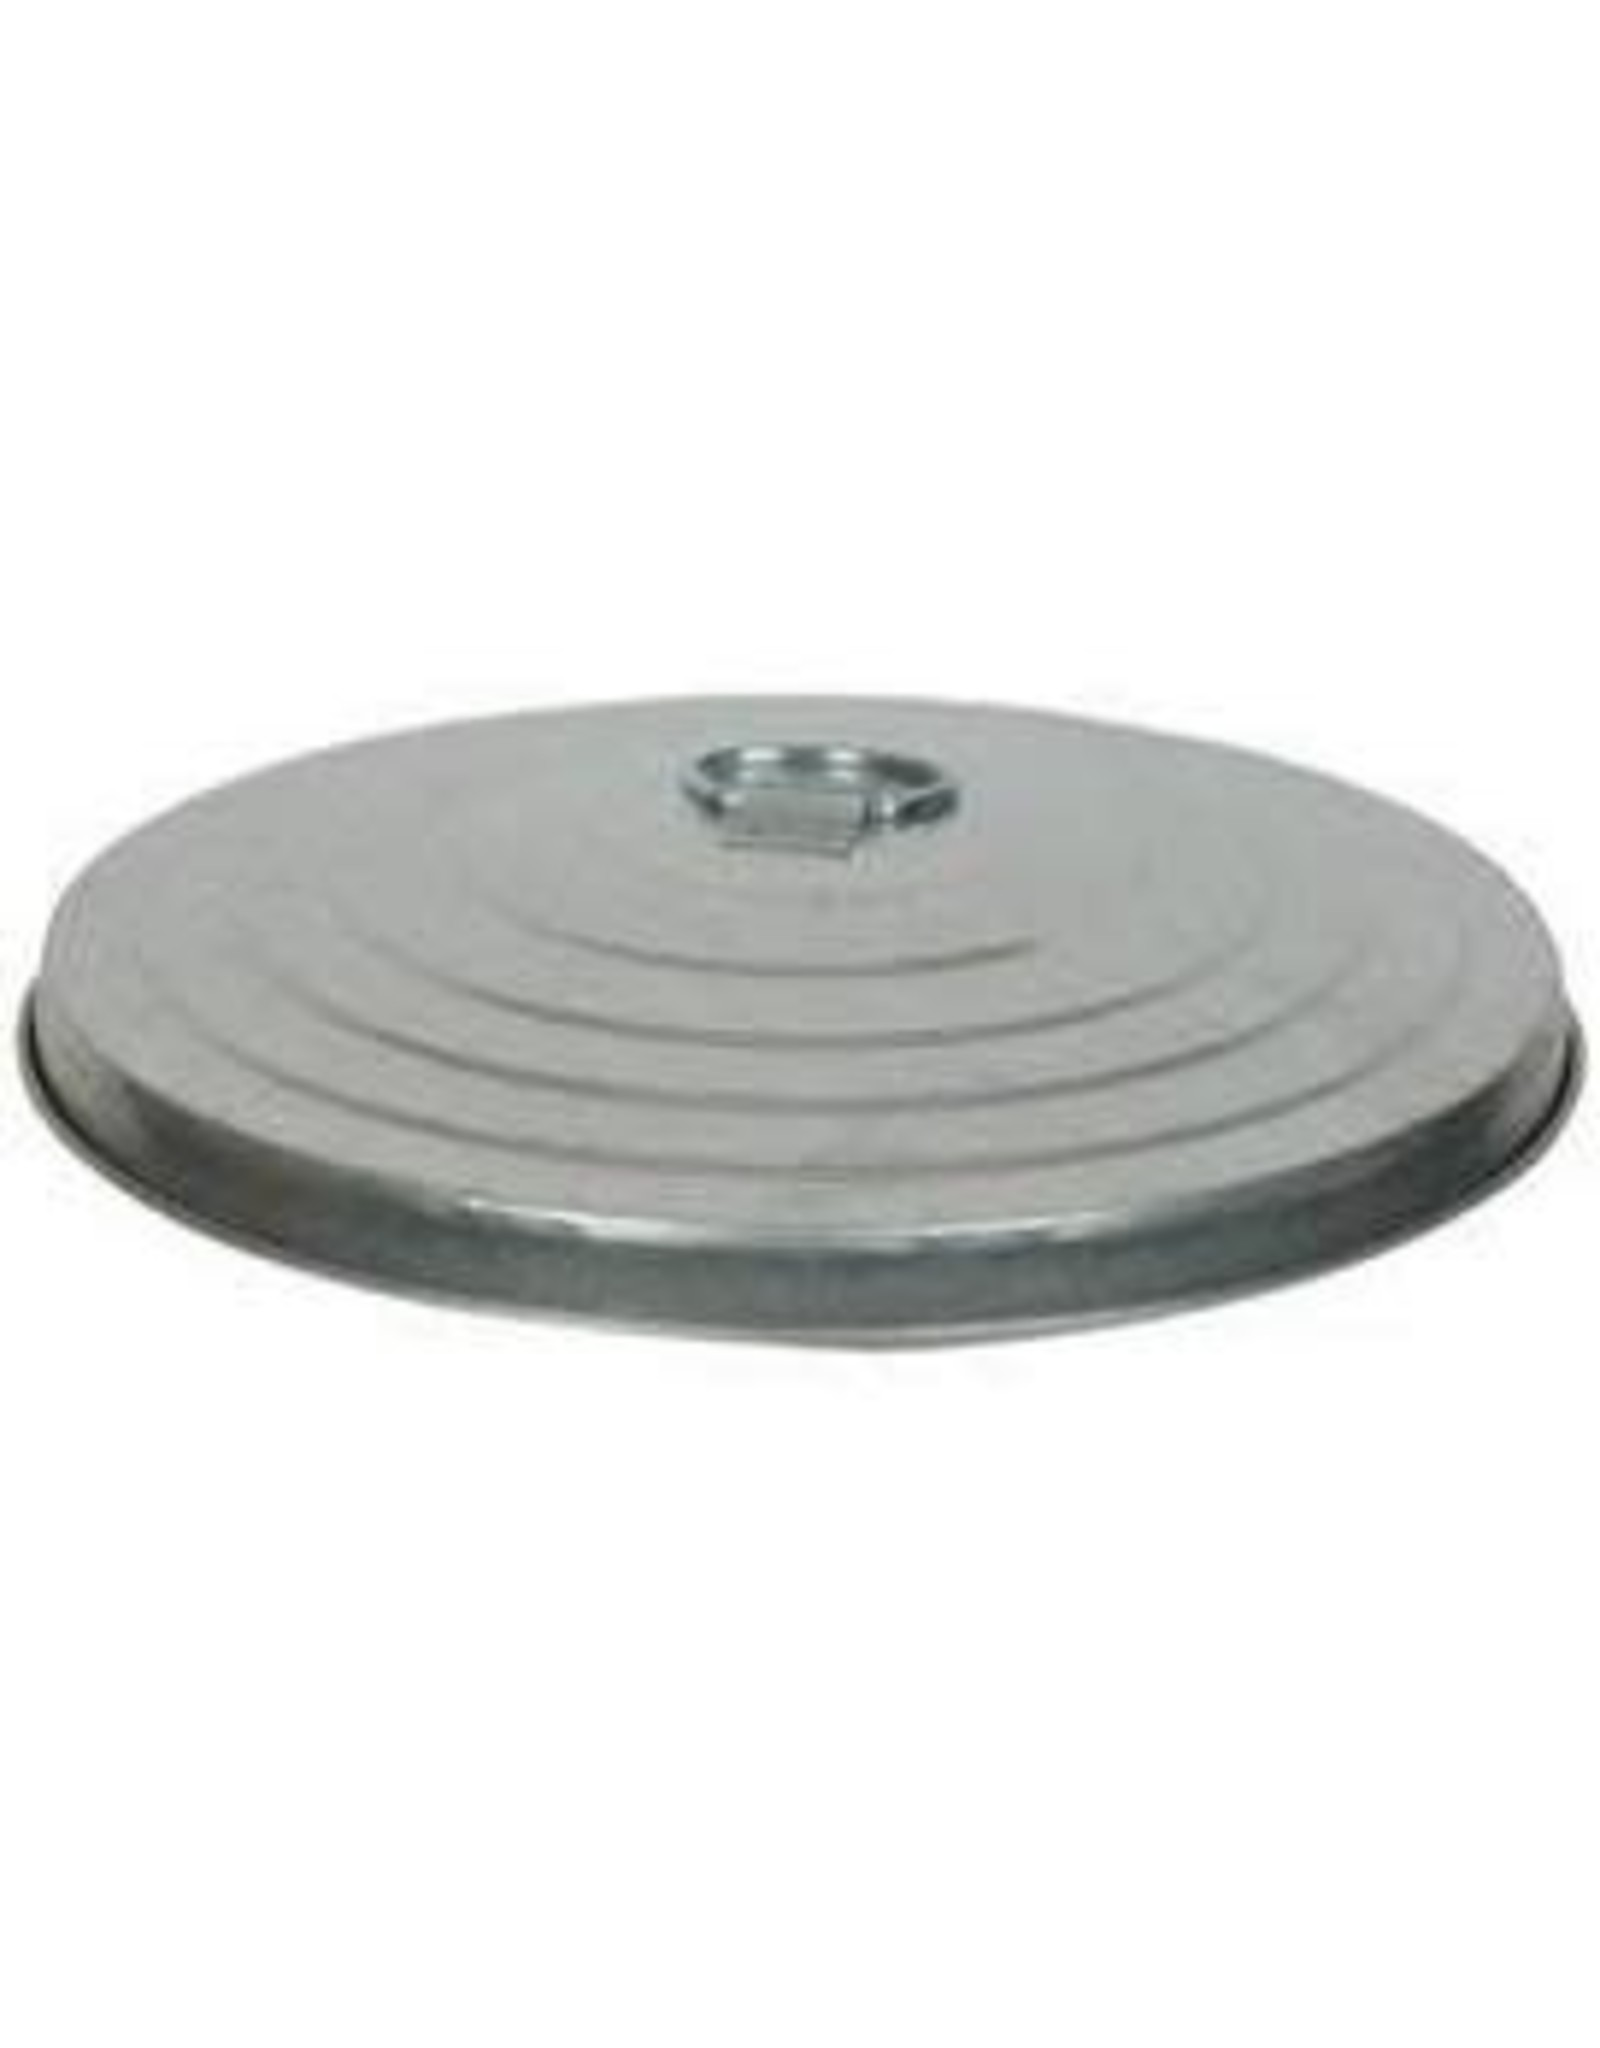 Lid Cover Galv 30 Trash Can